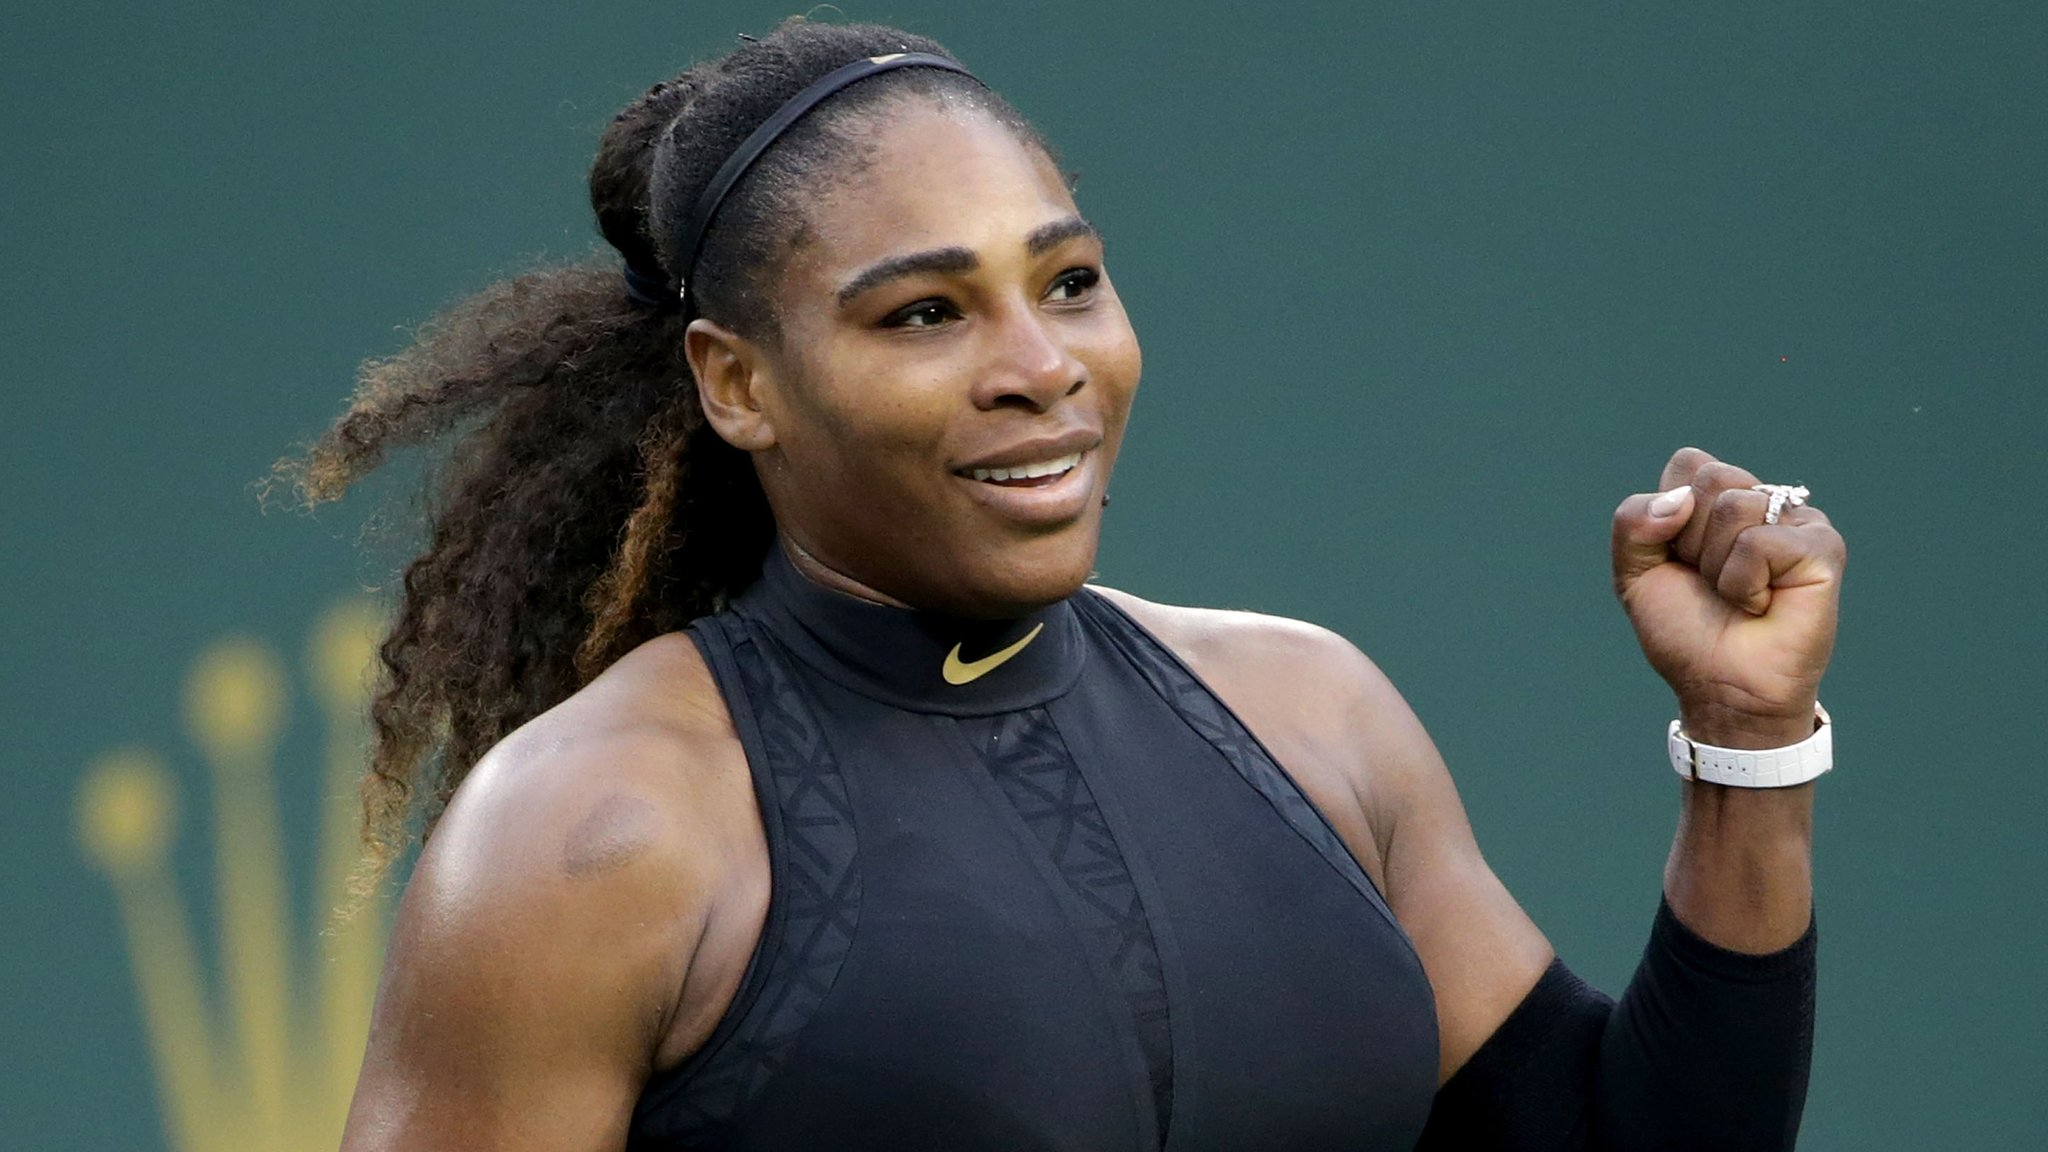 French Open: Serena Williams can win at Roland Garros, says coach Mouratoglou